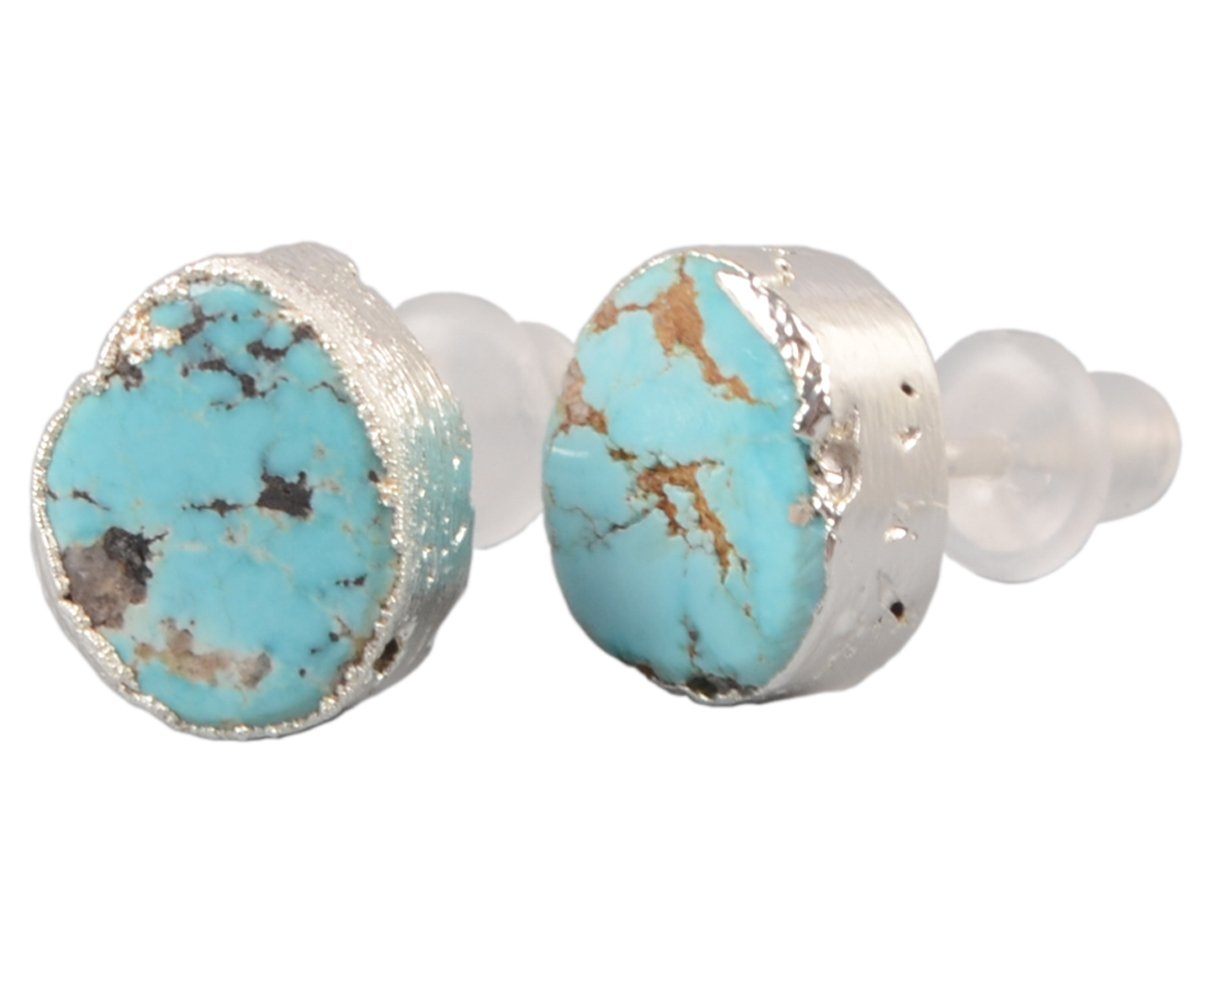 c22e9576e Amazon.com: ZENGORI 1 Pair 925 Sterling Silver Natural Freeform Turquoise  Stud Earrings Women Jewelry SS043: Toys & Games